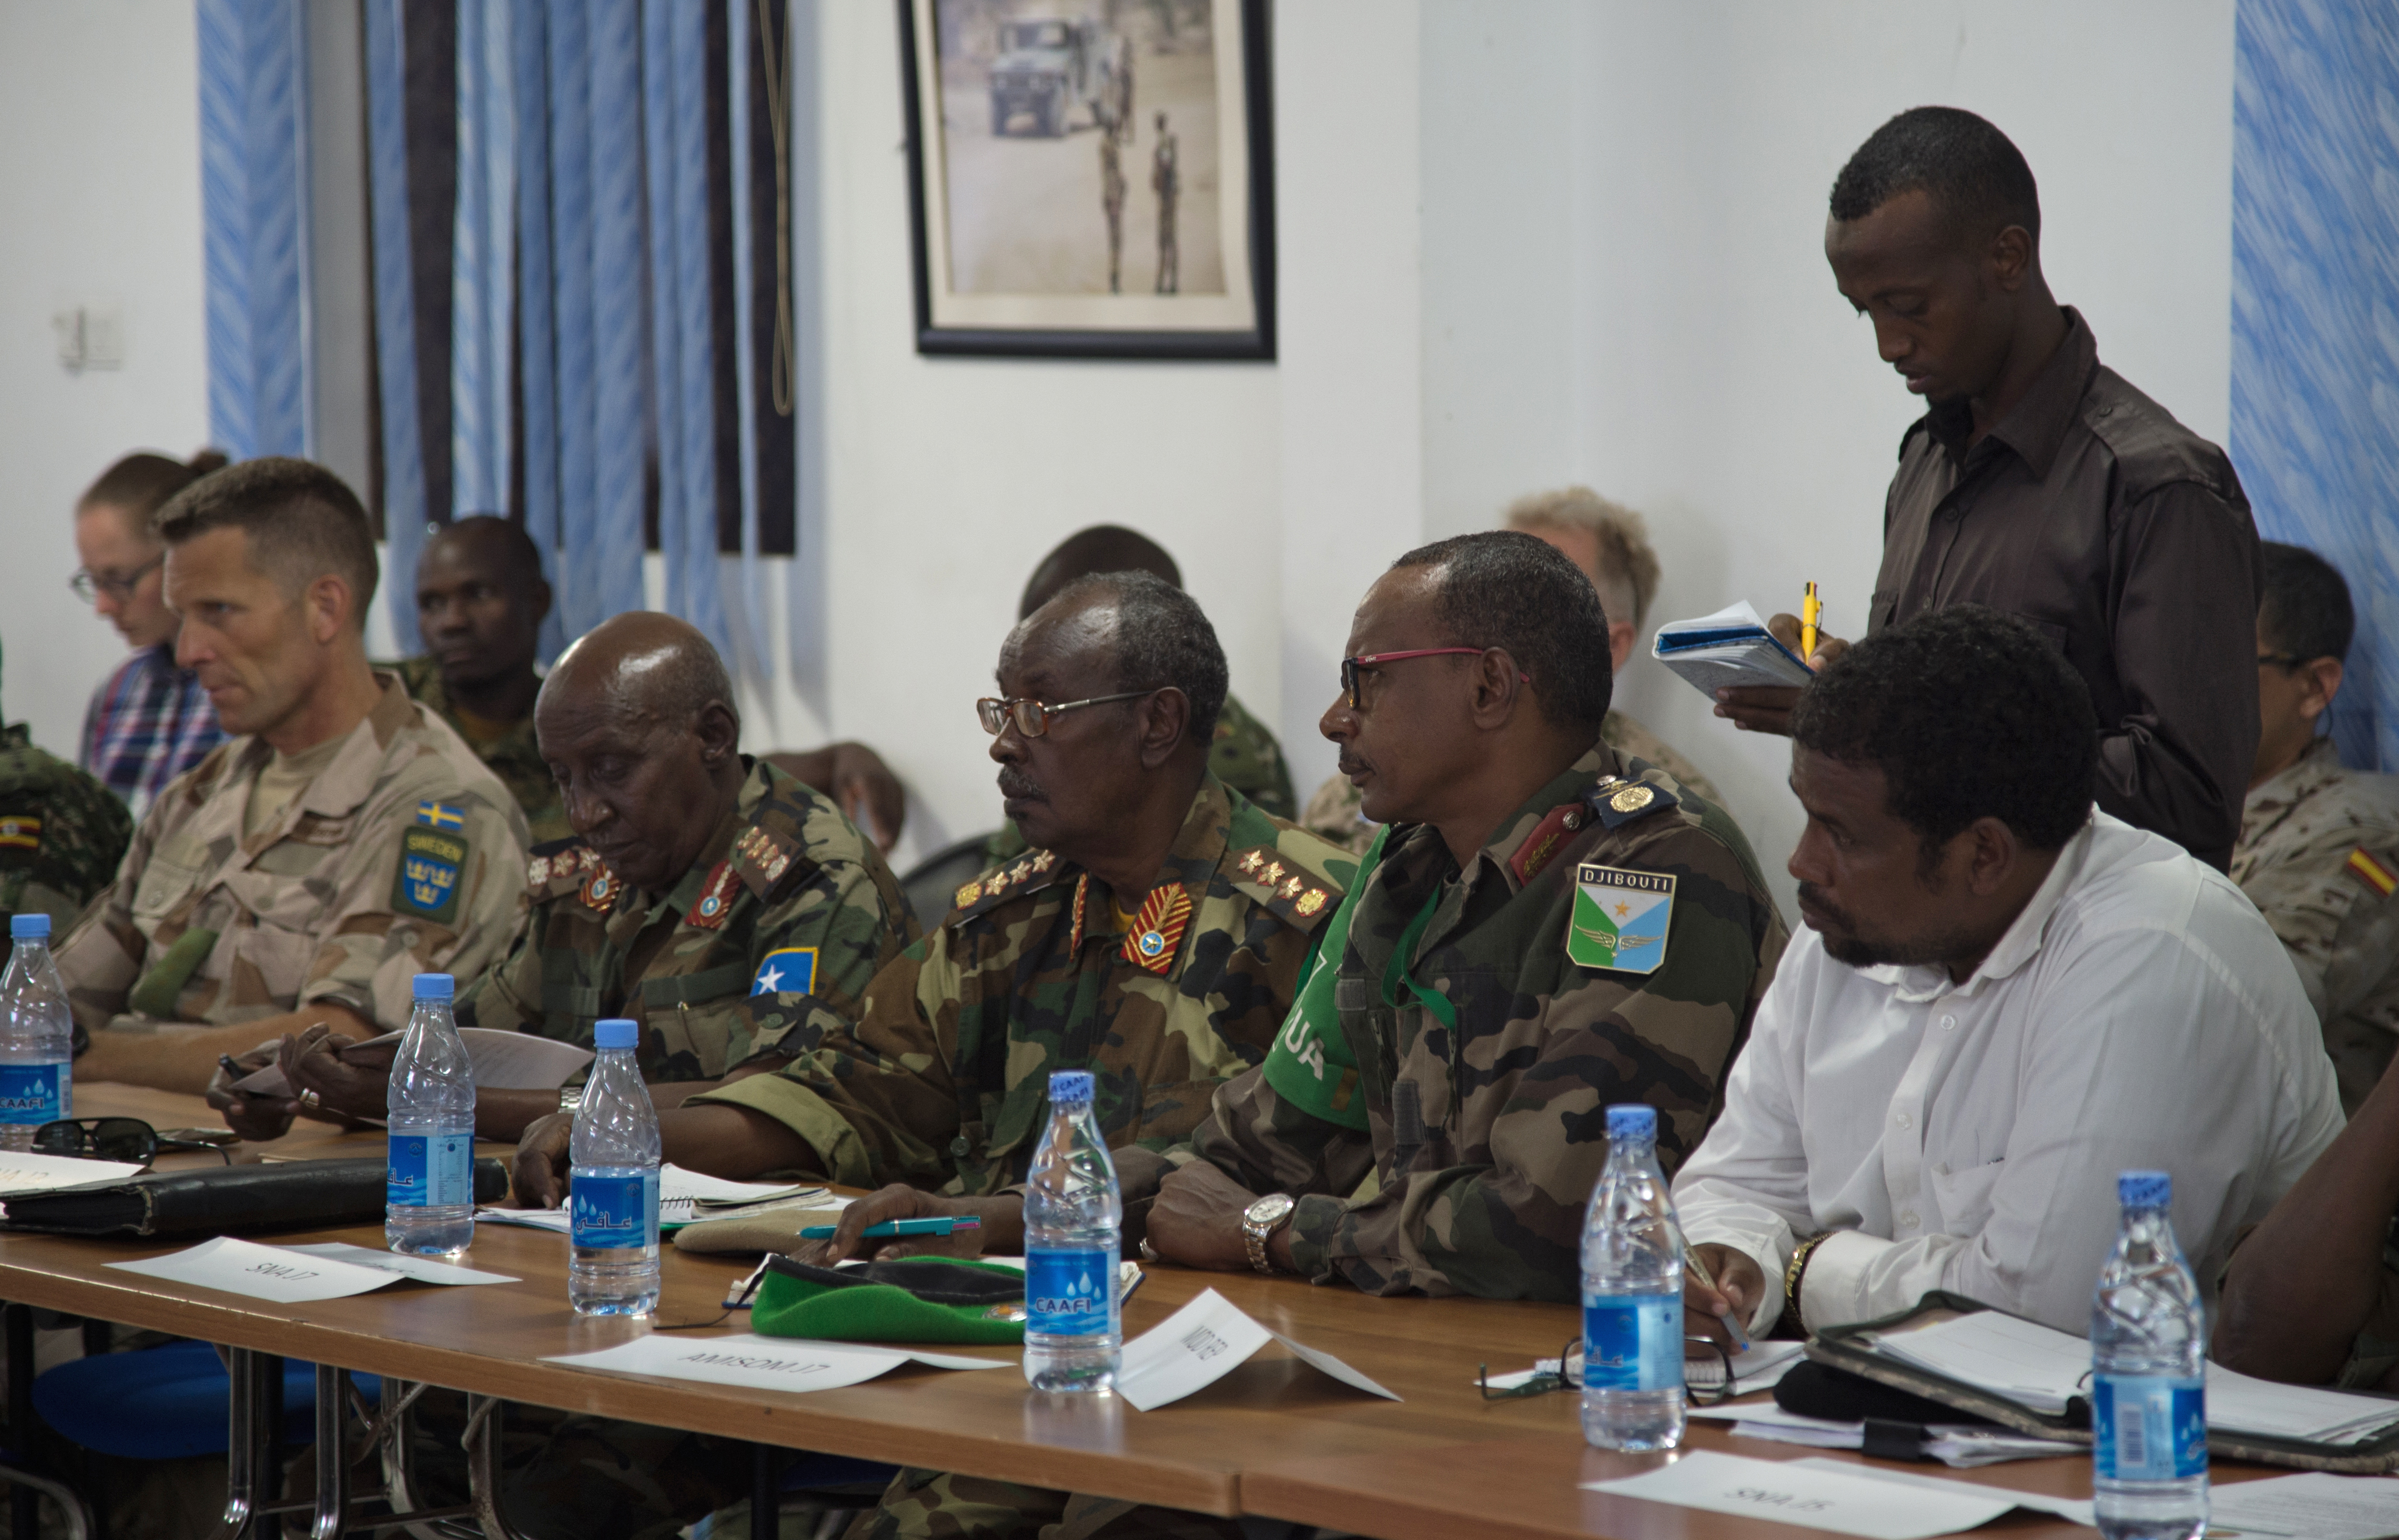 Leaders of the Somali National Army meet with international military and civilian officials to discuss the future of Somalia's security at the SNA Symposium in downtown Mogadishu, Jan. 11, 2017. More than 60 participants attended the two-day event, including representatives from Denmark, Germany, Italy, Somalia, Turkey, Uganda, the United Arab Emirates, United Kingdom and the United States of America. Also in attendance, were representatives from international organizations such as the United Nations, European Union Training Mission, and the African Union Mission in Somalia.